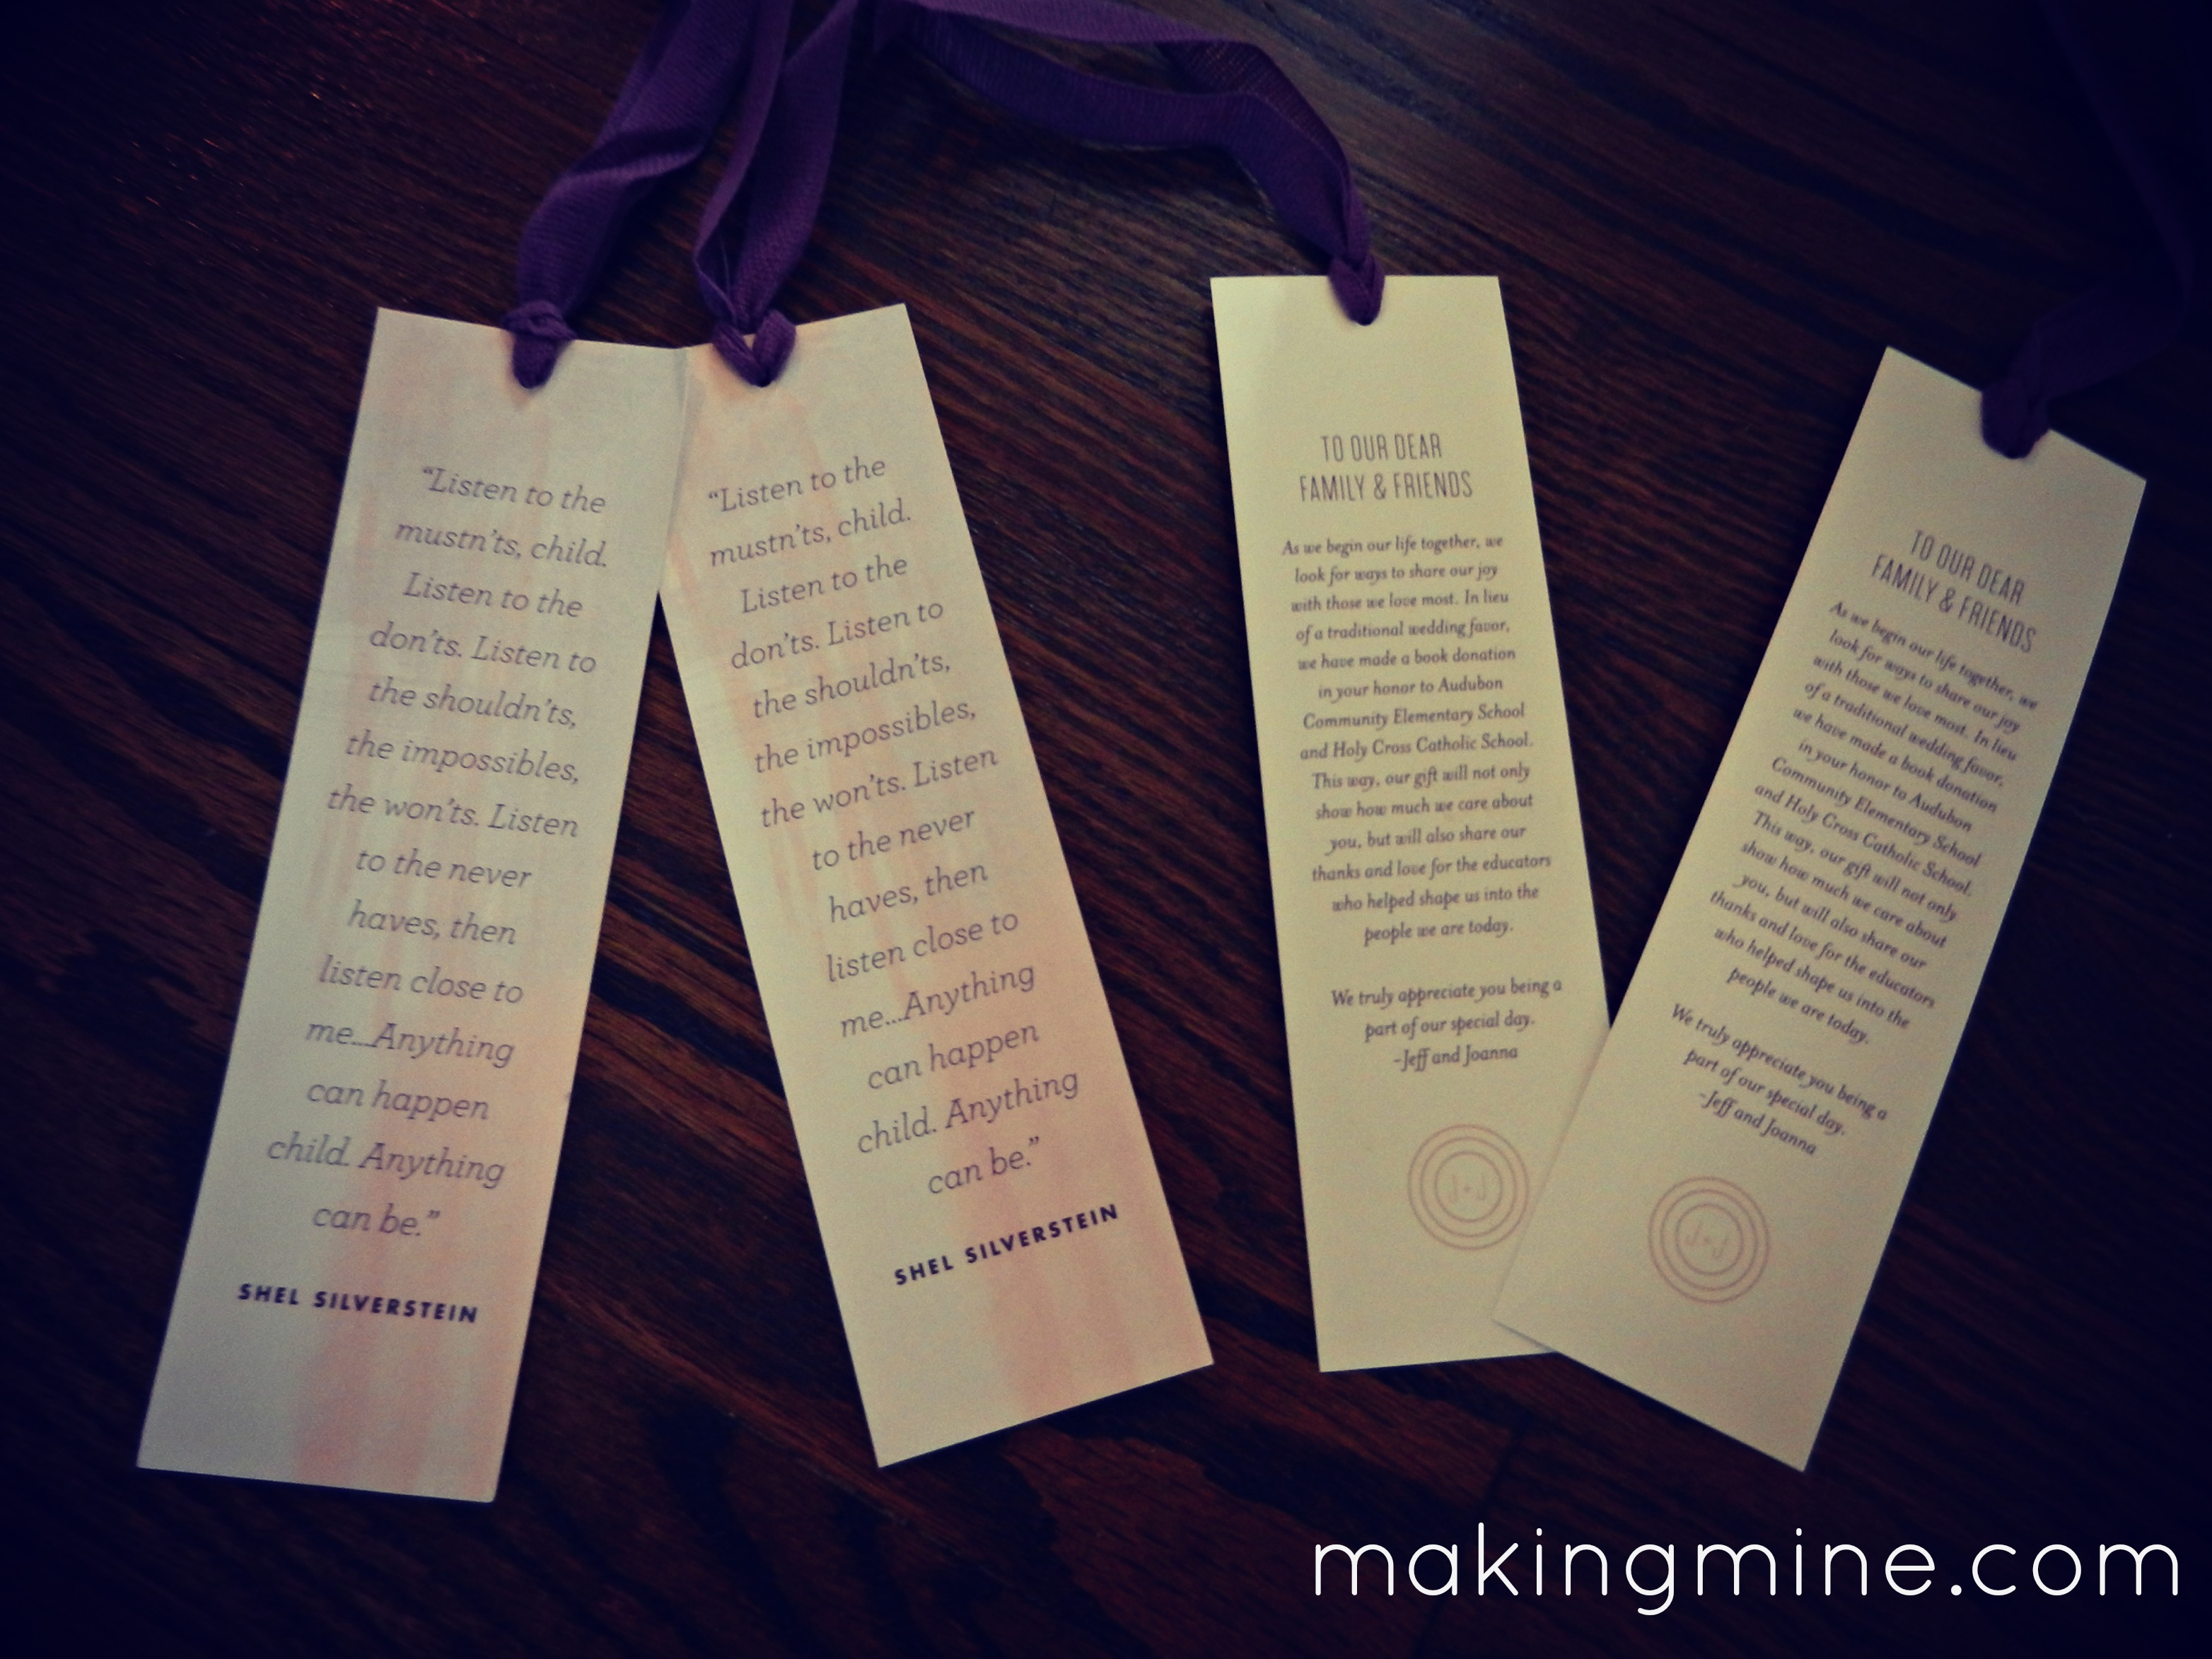 Murnan Wedding Guest Favors